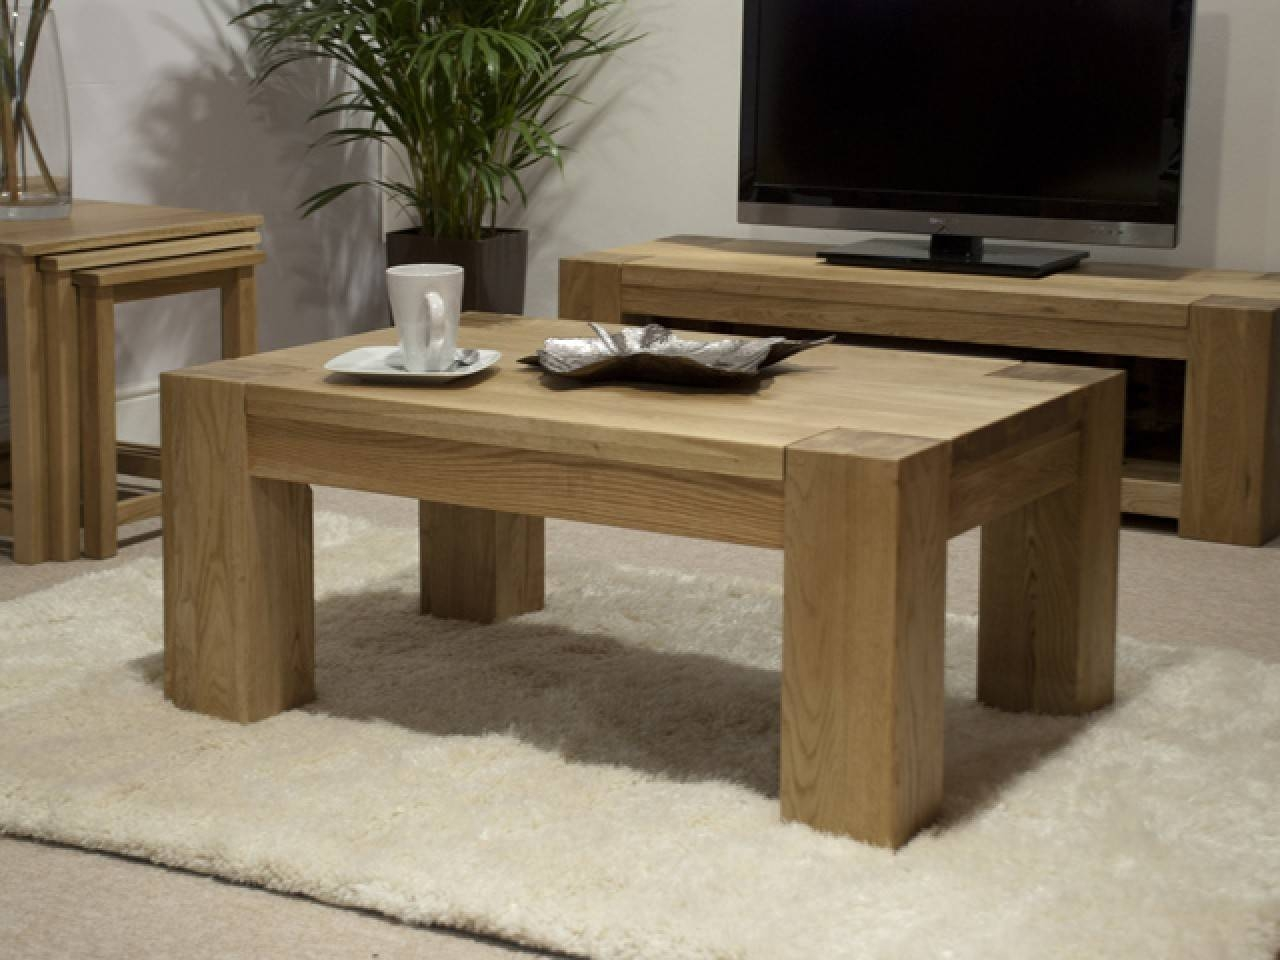 Oak Coffee Tables Trend Small Table / Thippo With Regard To Oak Coffee Table Sets (View 12 of 30)